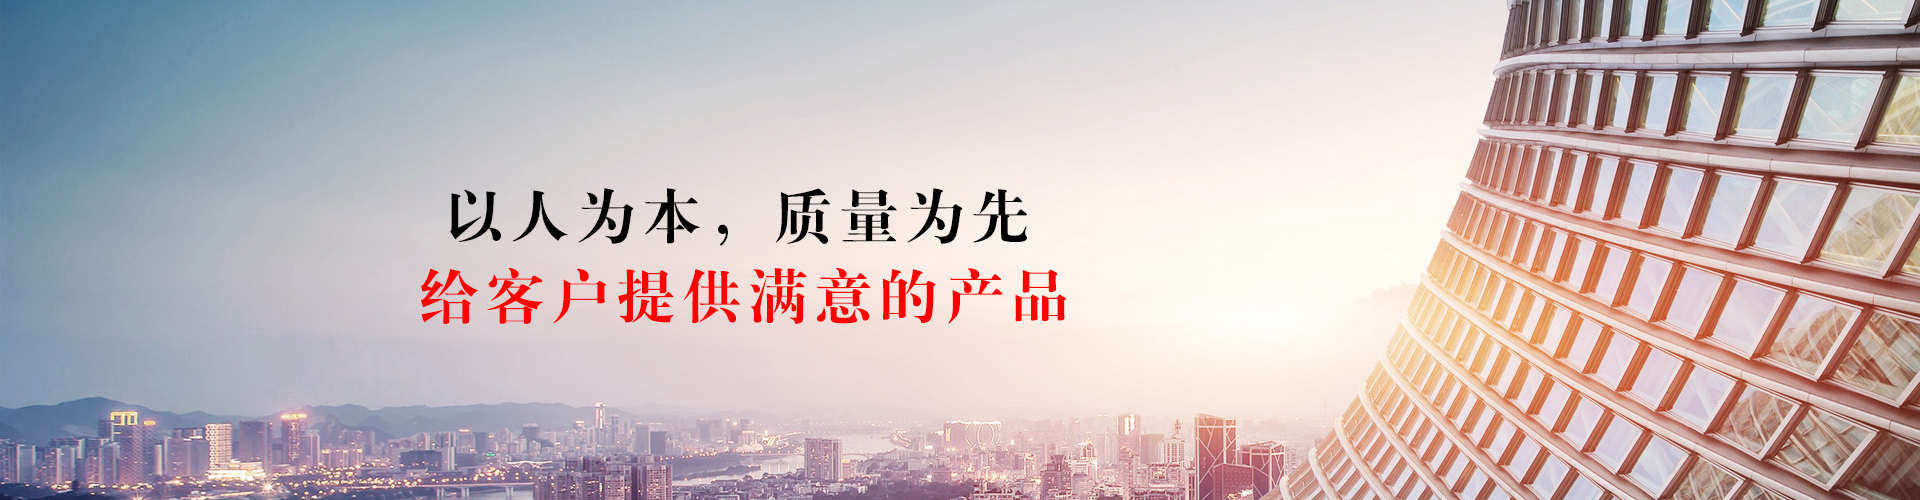 http://www.htai.hk/data/images/slide/20190826155915_884.jpg